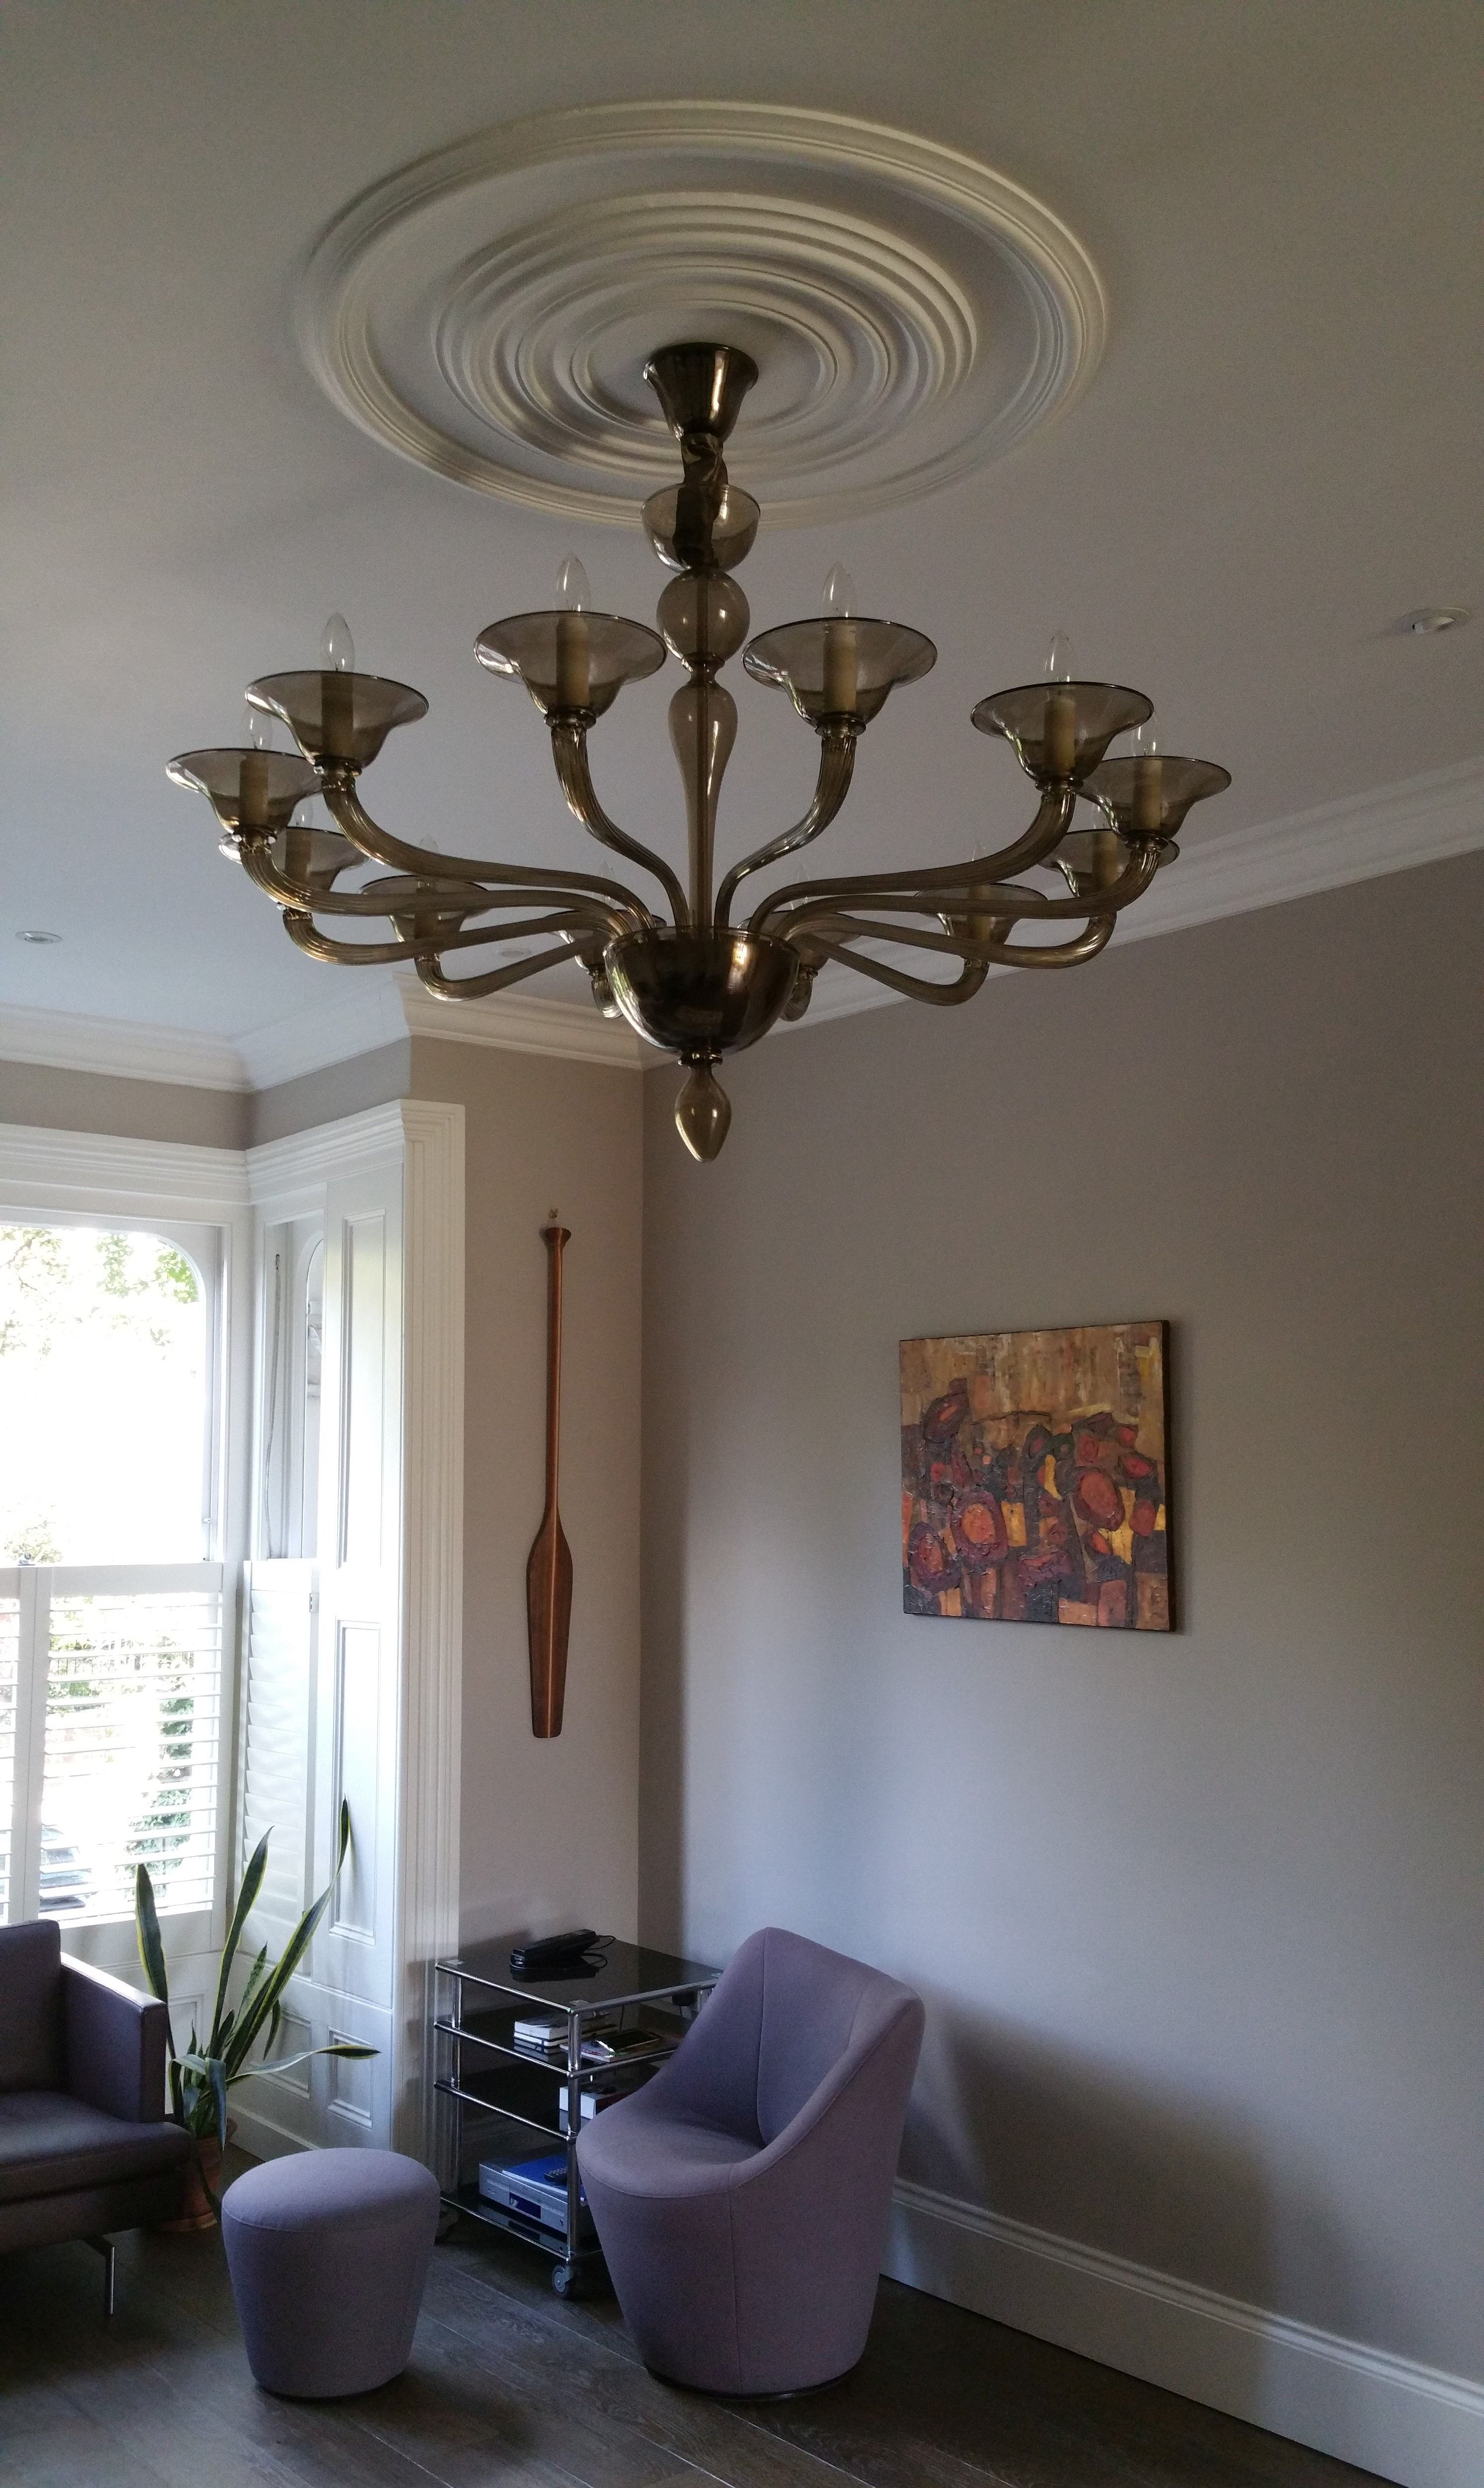 The classic murano glass chandelier will never go out of fashion the classic murano glass chandelier will never go out of fashion this lovely bespoke chandelier arubaitofo Images